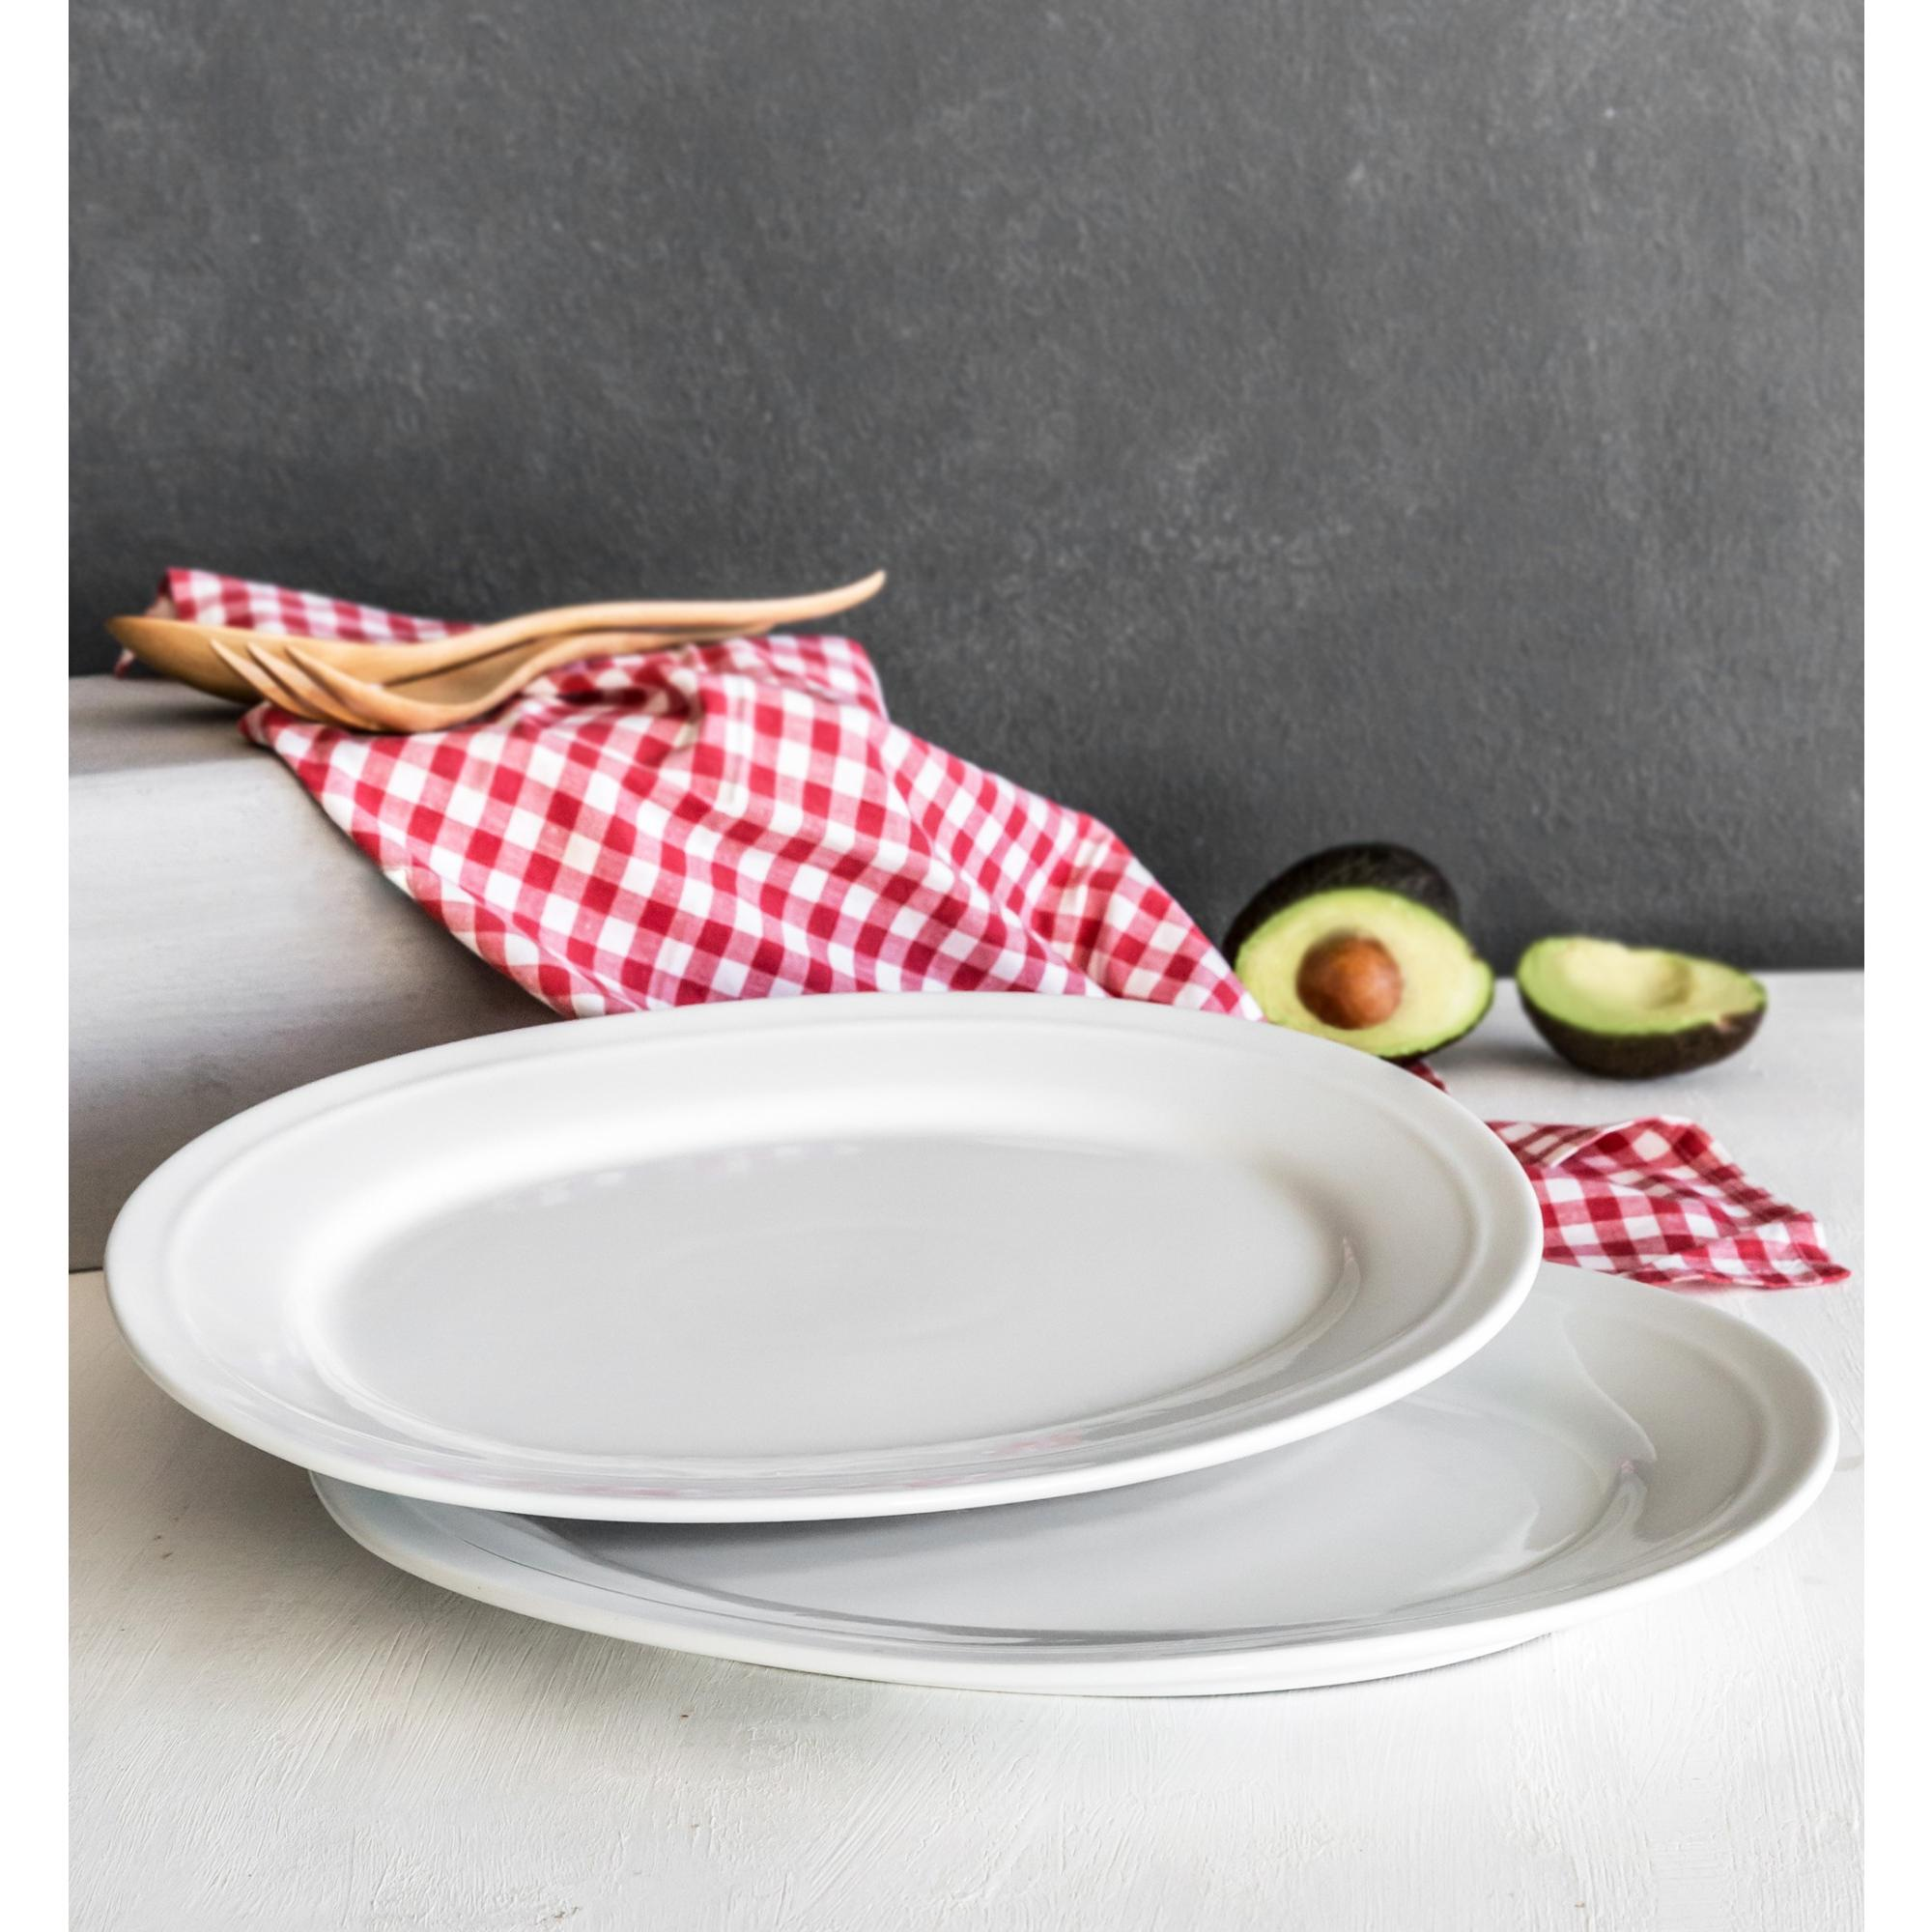 Better Homes and Gardens Oval Platters, White, Set of 2